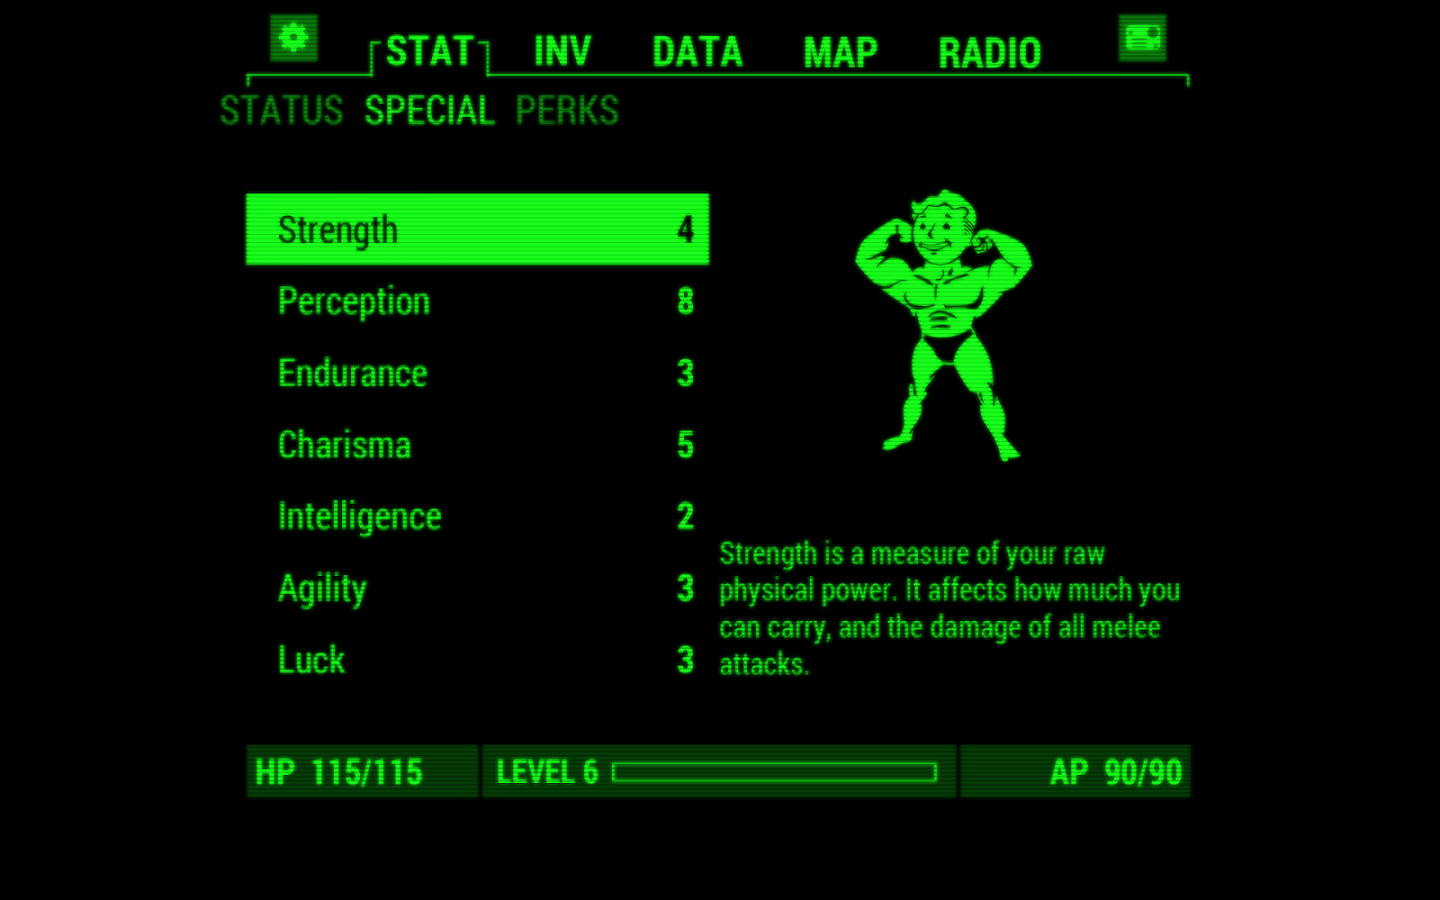 Bethesda Promotes Fallout 4 Release with Pip-Boy App